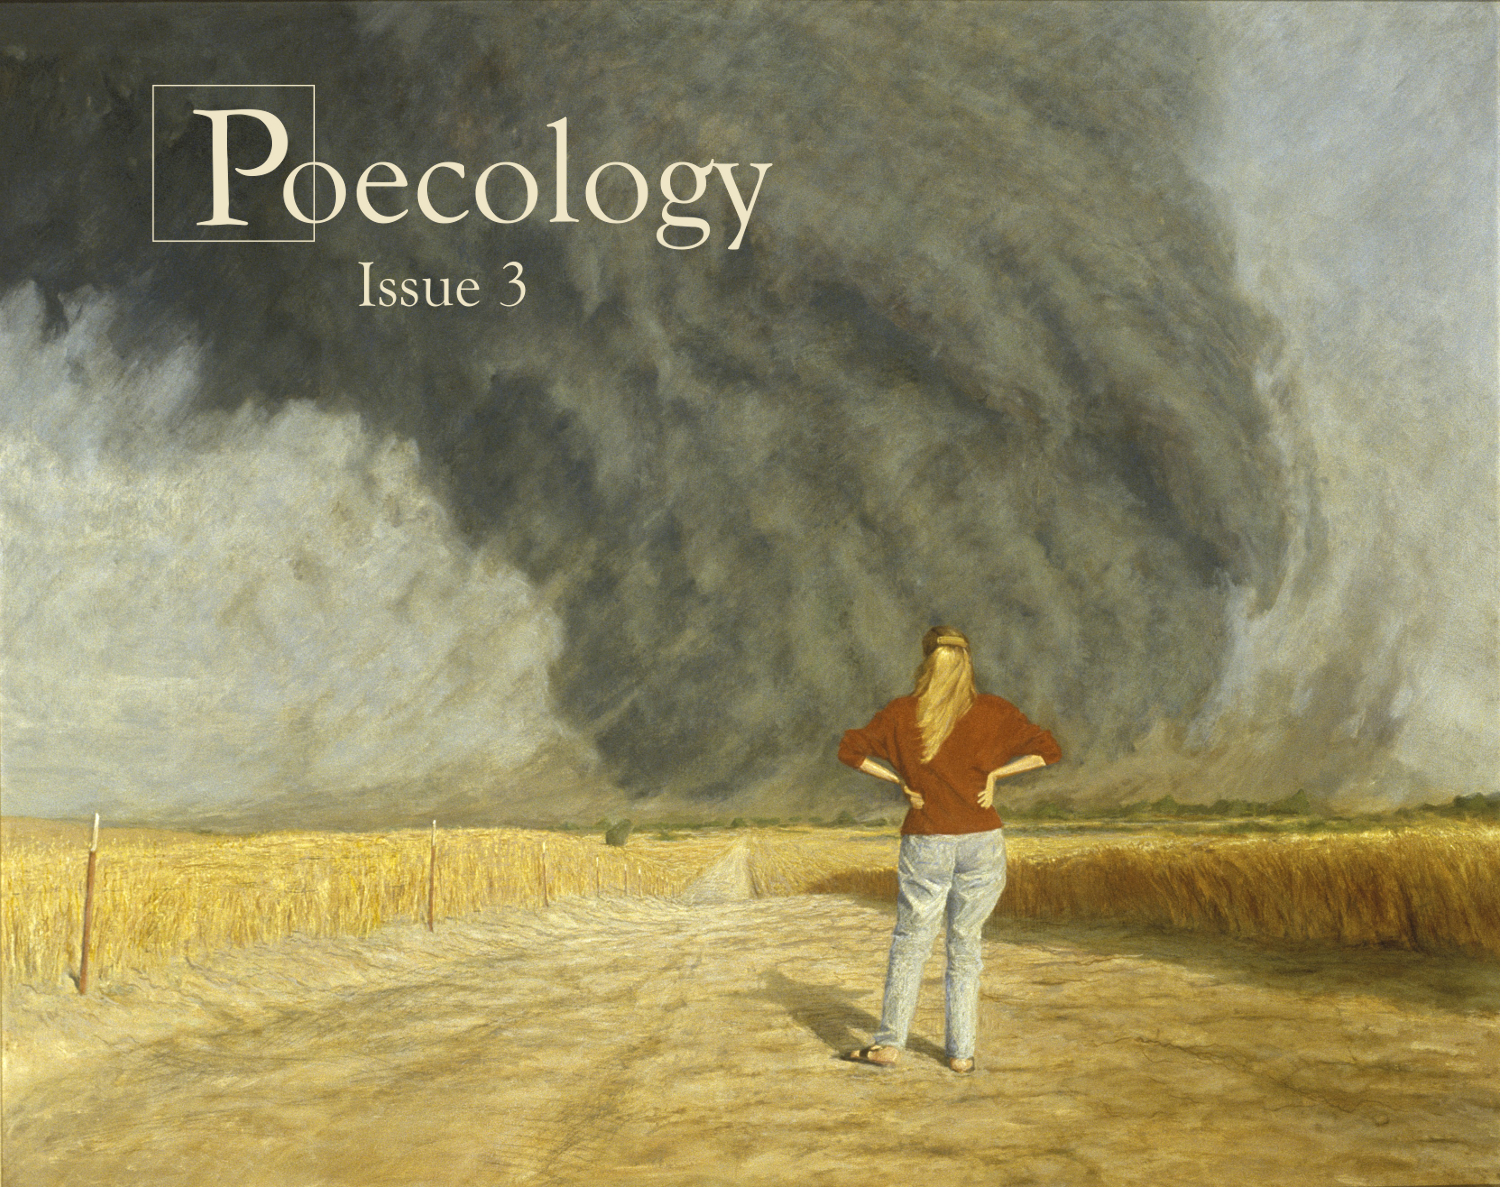 Issue 3 Poecology edited by Kristi Moos